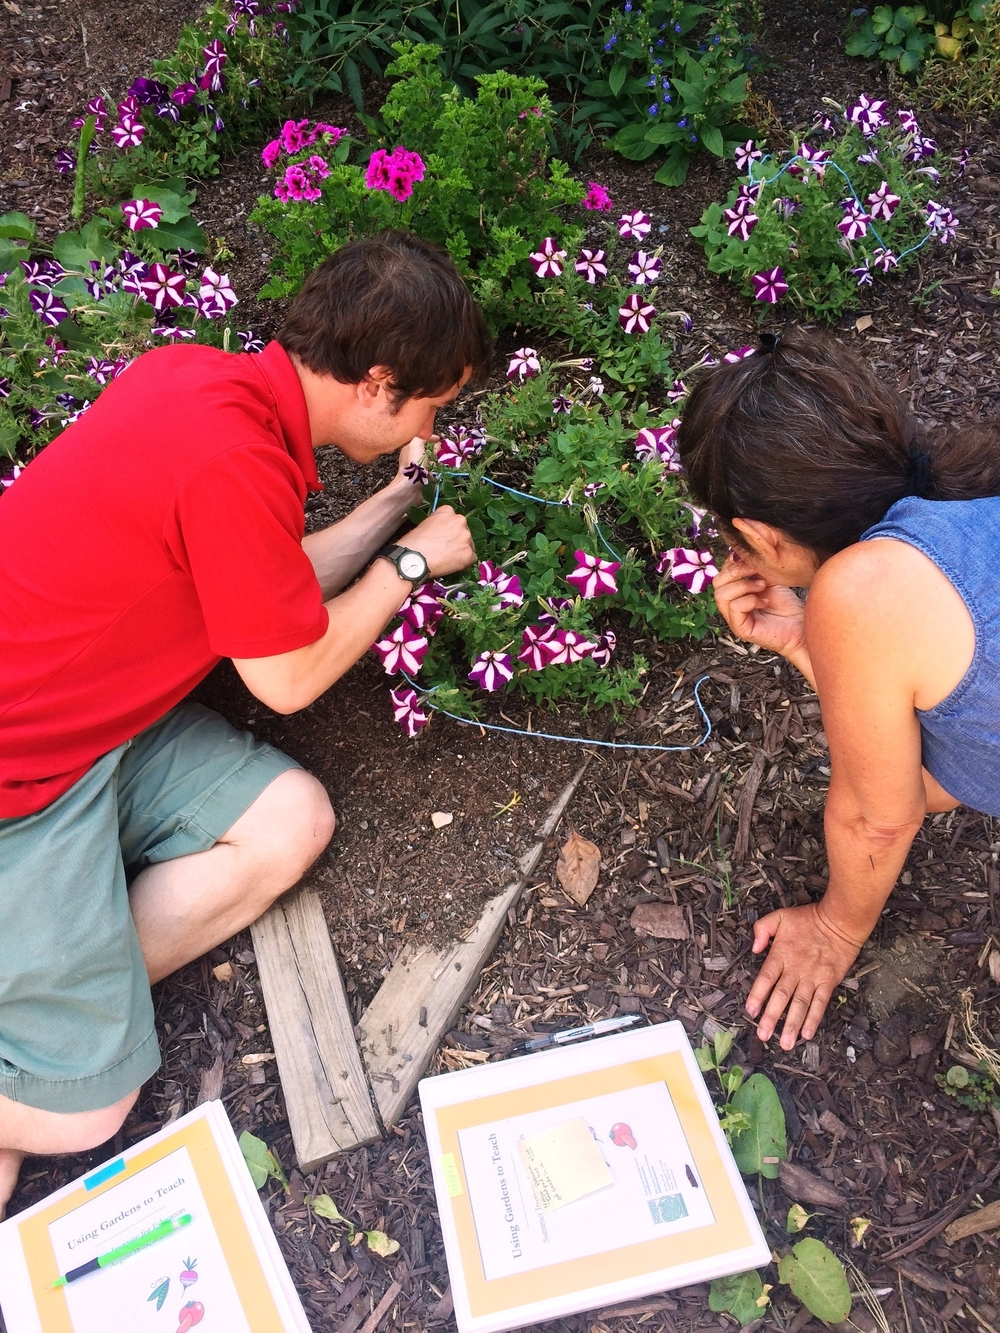 Muriel Horowitz  taught educators how to use wonder circles to investigate a small patch of ground during her session titled Literacy in the Garden at the 2015 Using Gardens to Teach Summer Institute.